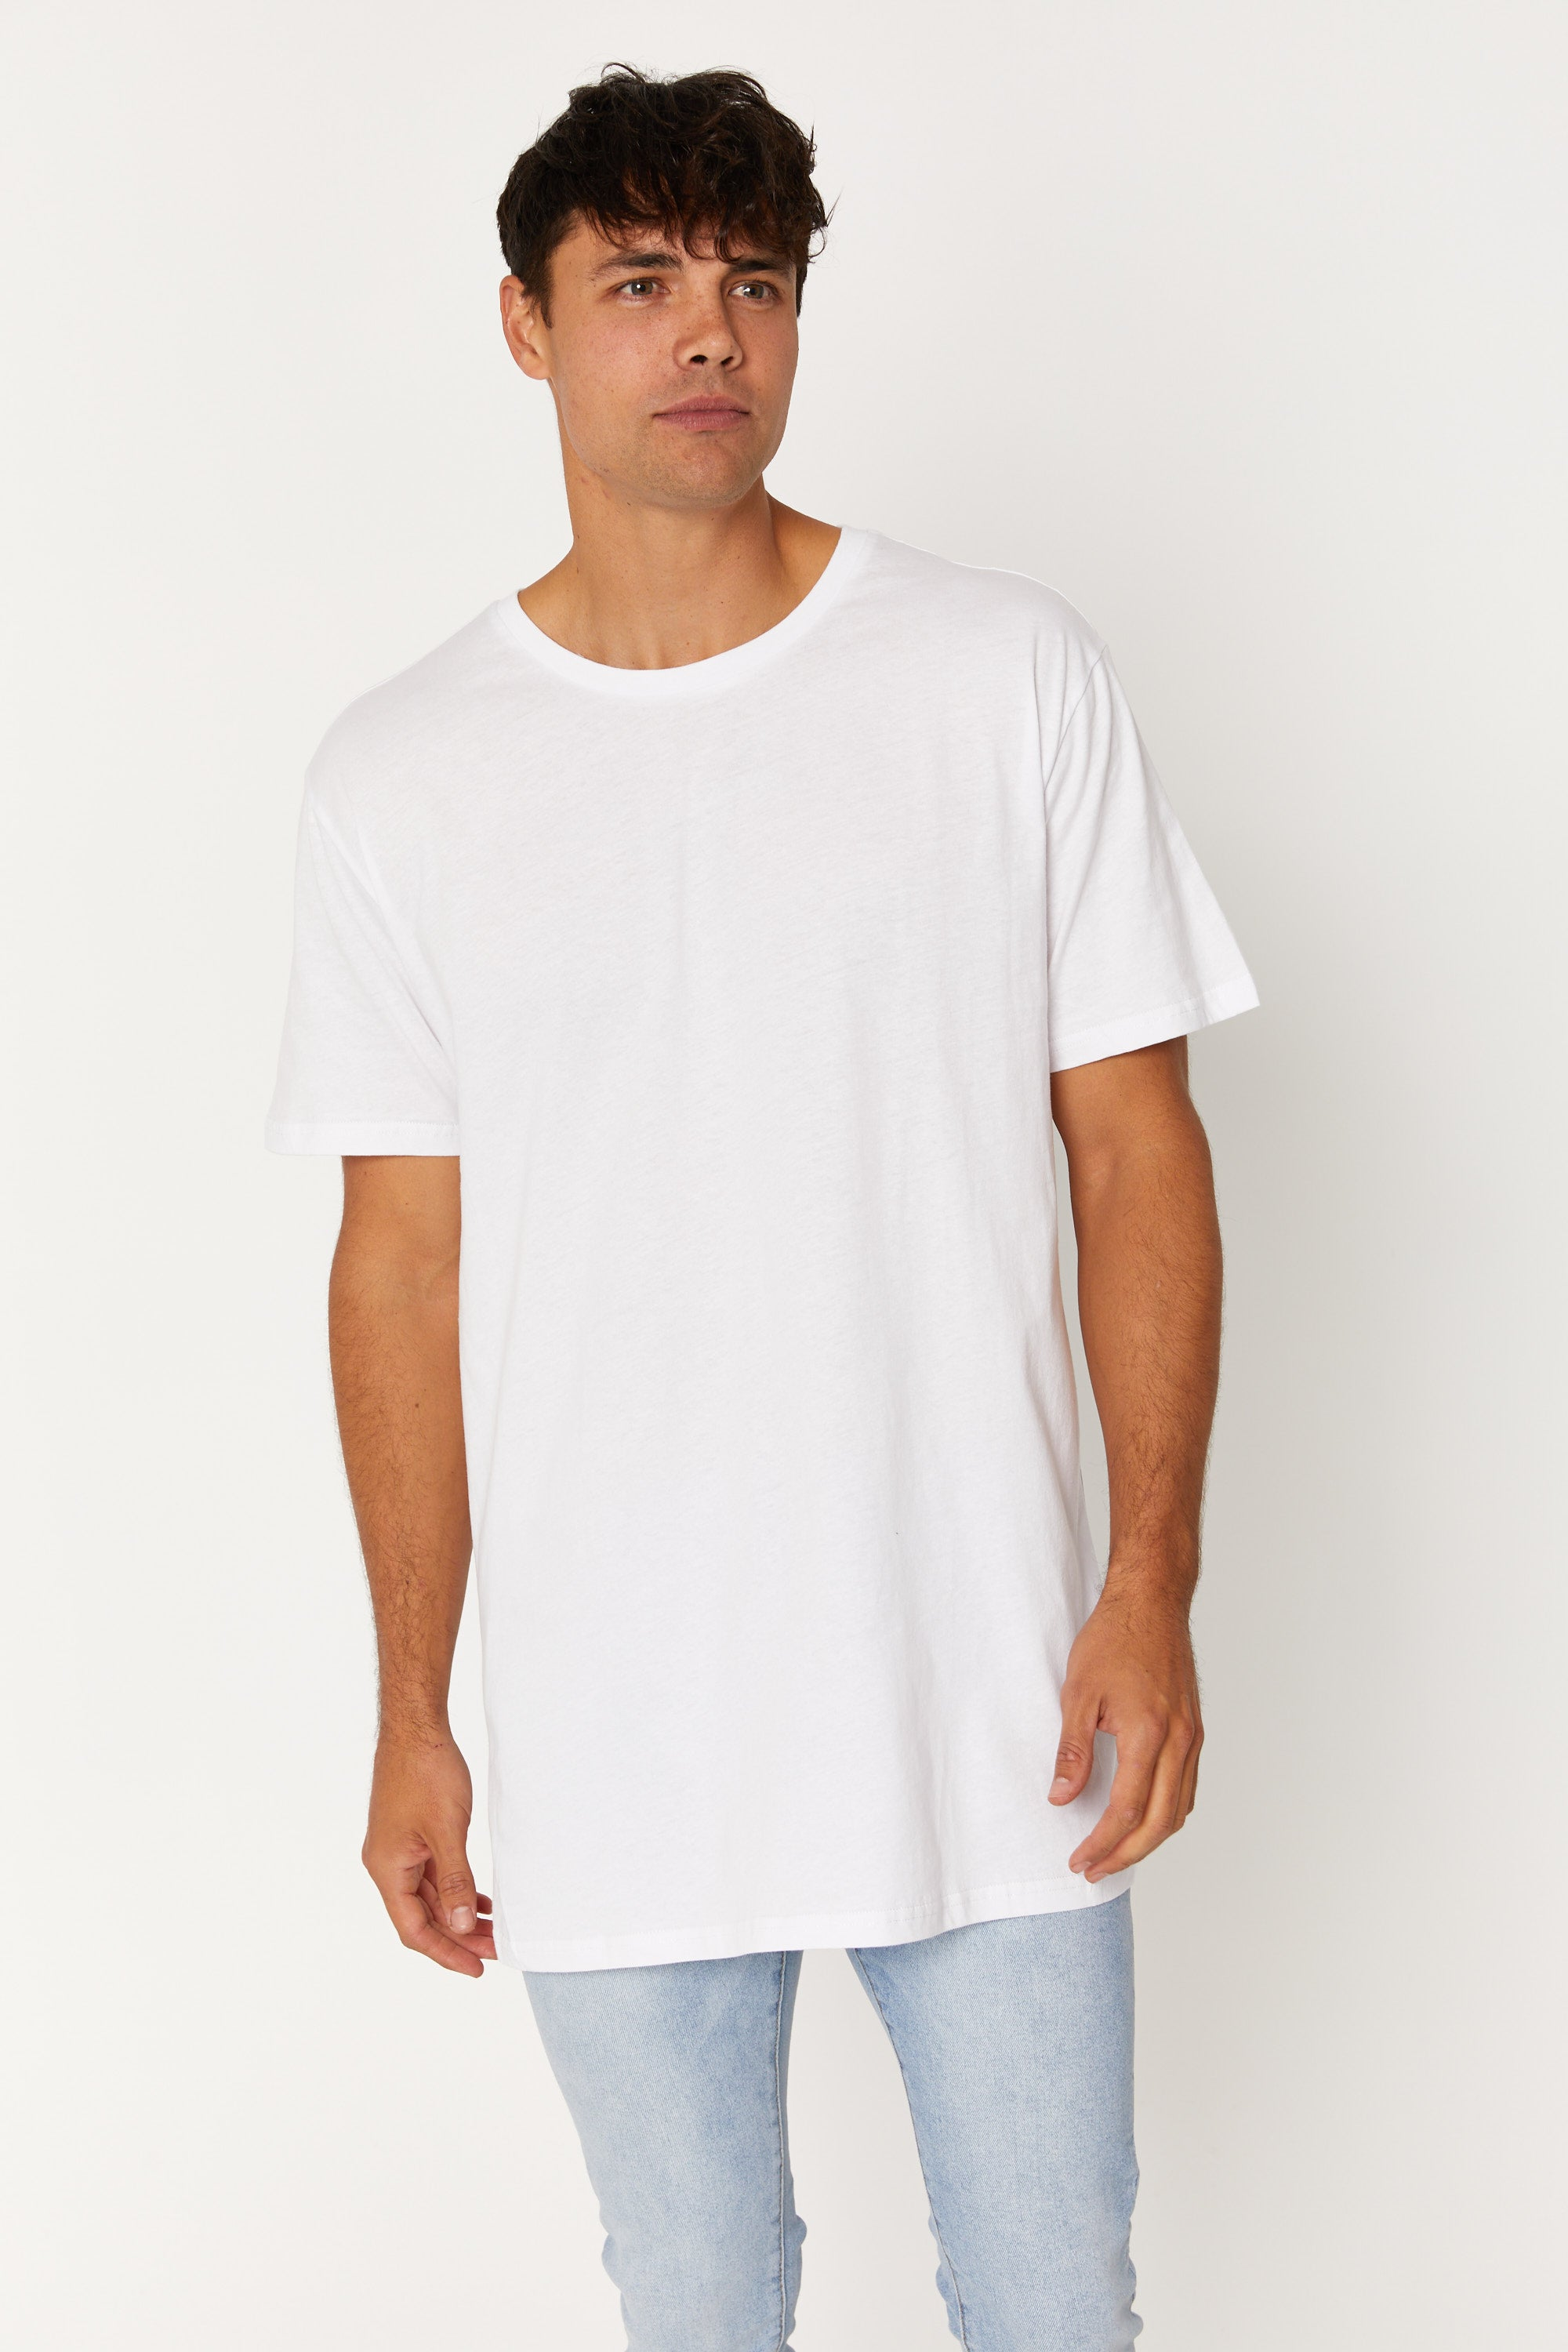 Nth Soft Wash Tee White